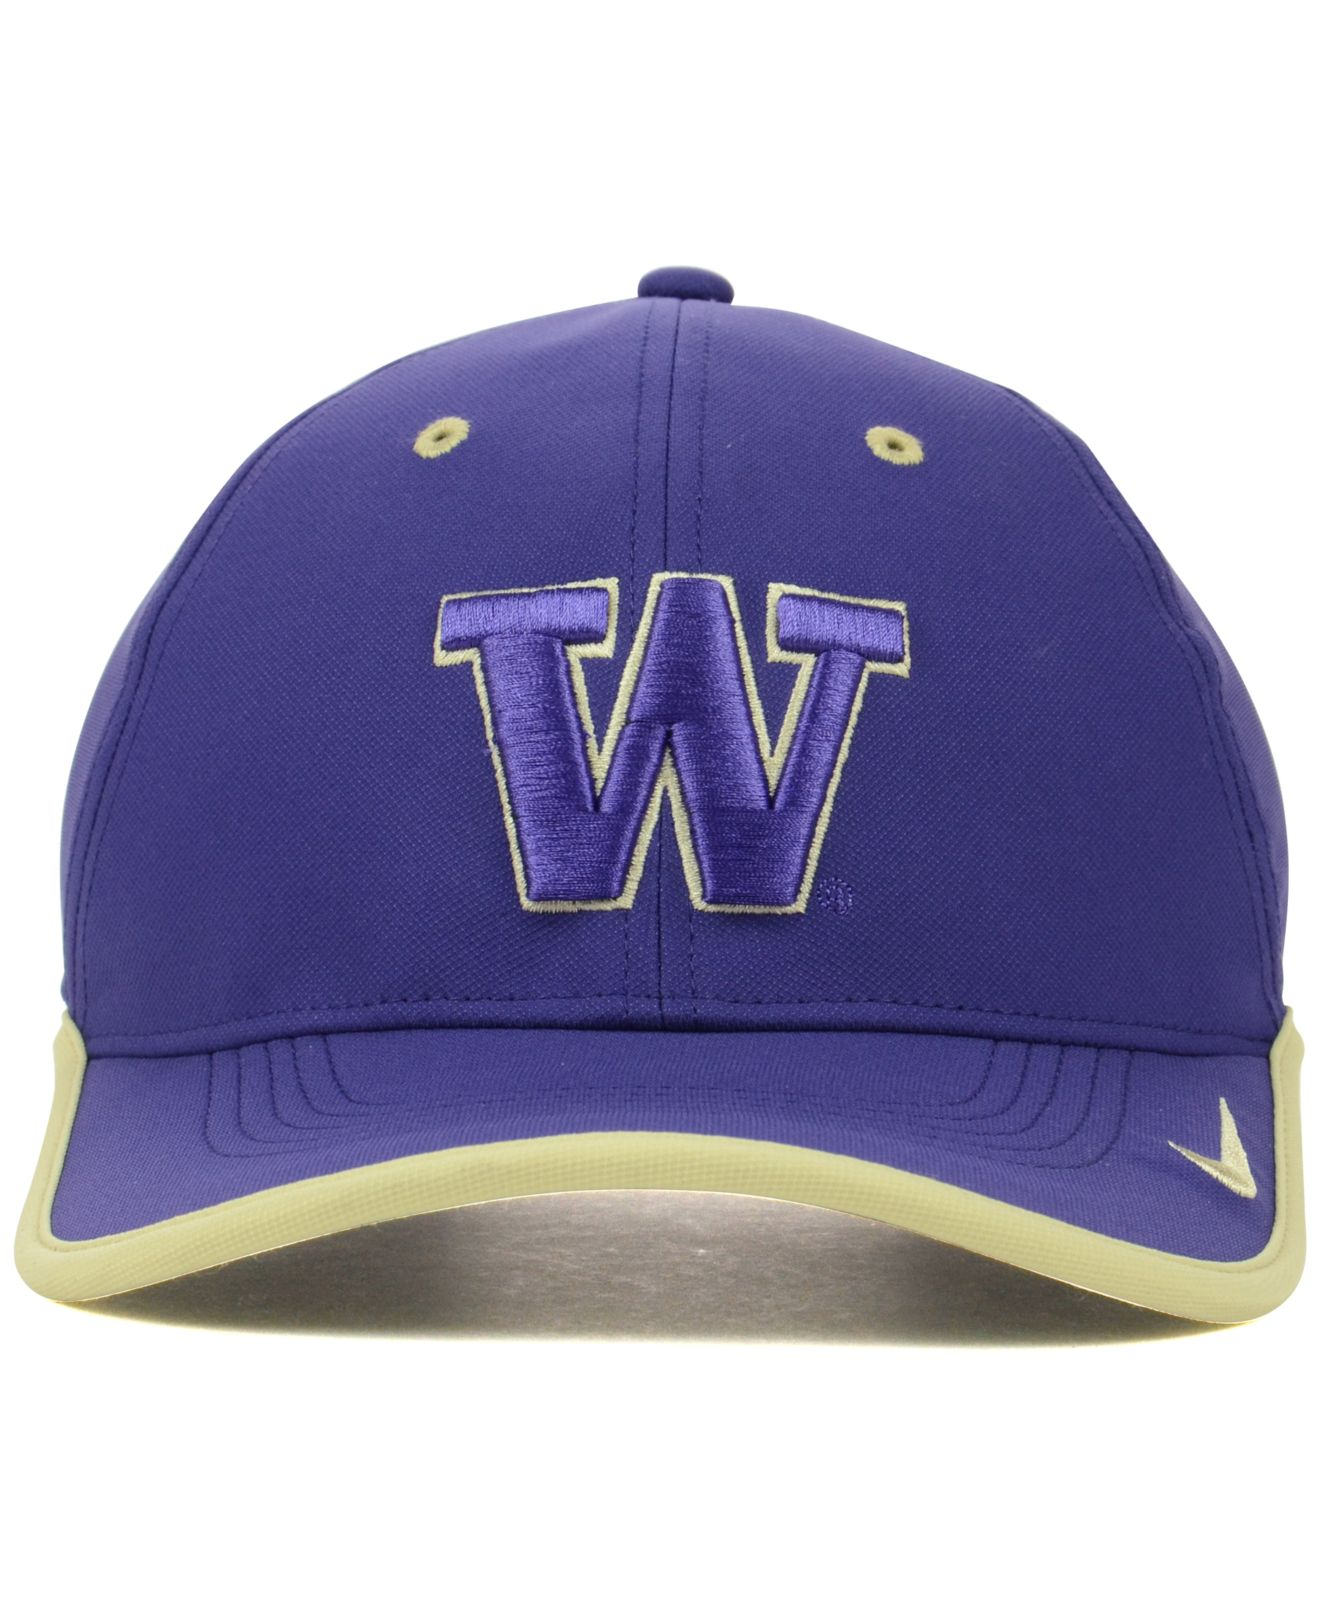 59243a28d2770 Lyst - Nike Washington Huskies Coaches Dri-fit Cap in Purple for Men